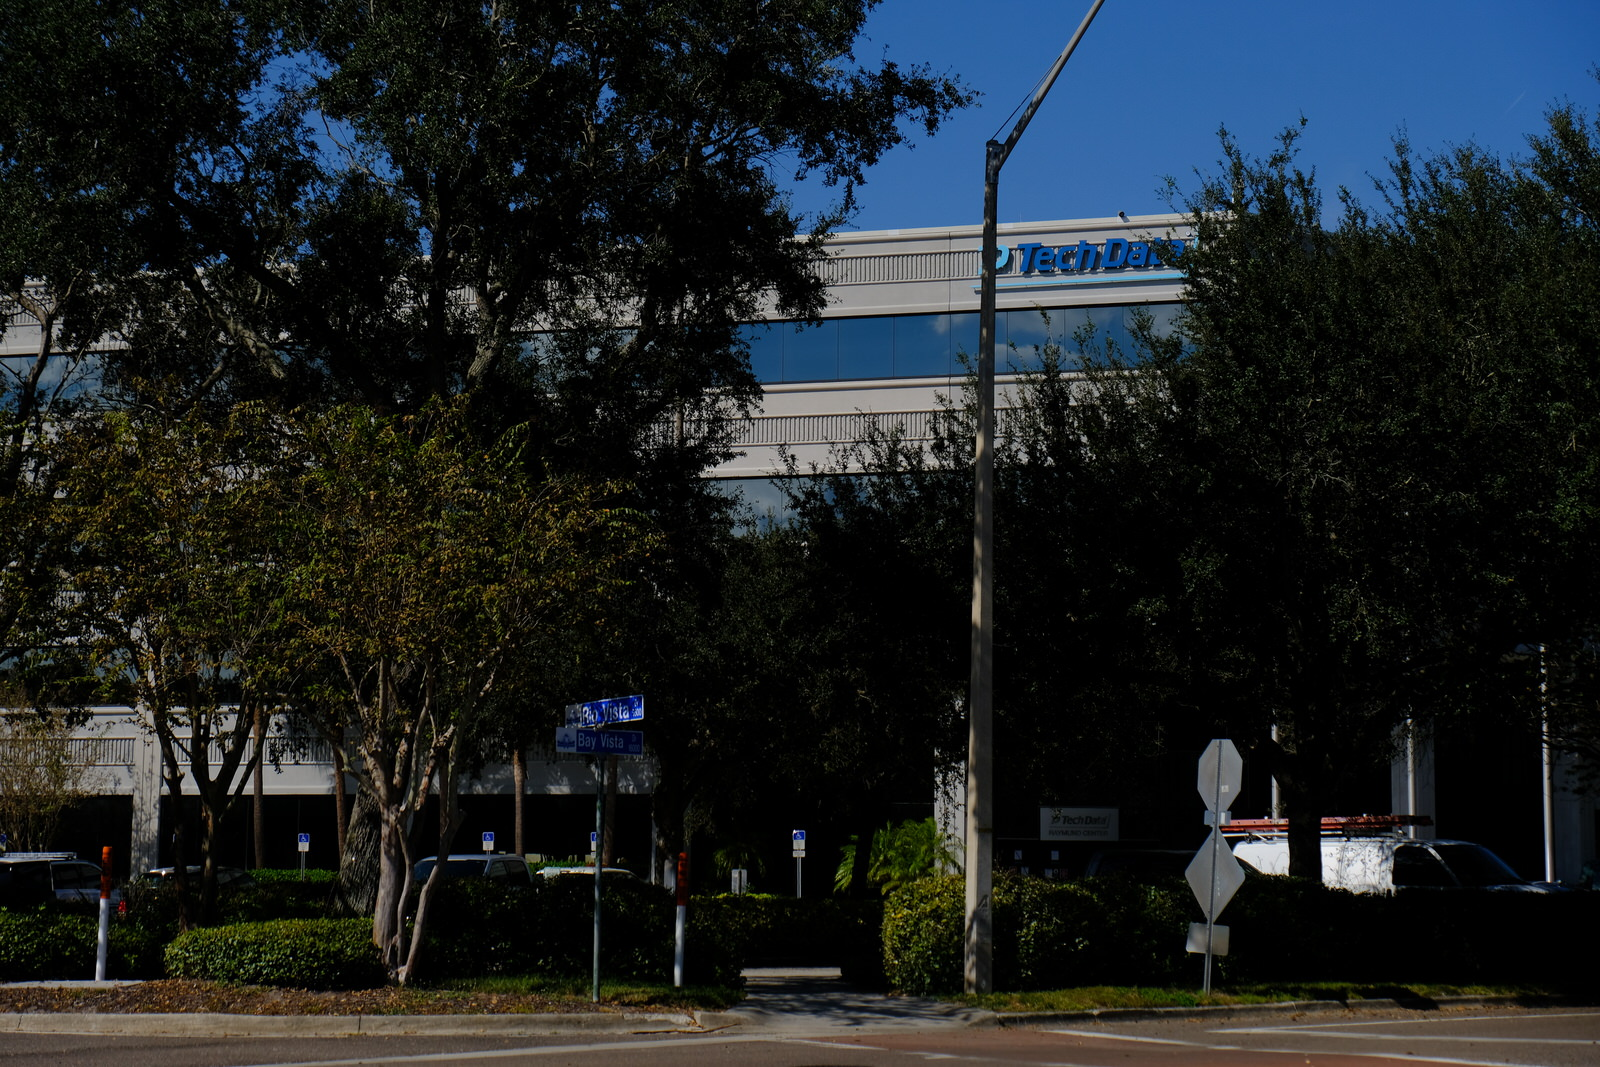 Tech Data's corporate headquarters in Clearwater, Florida.